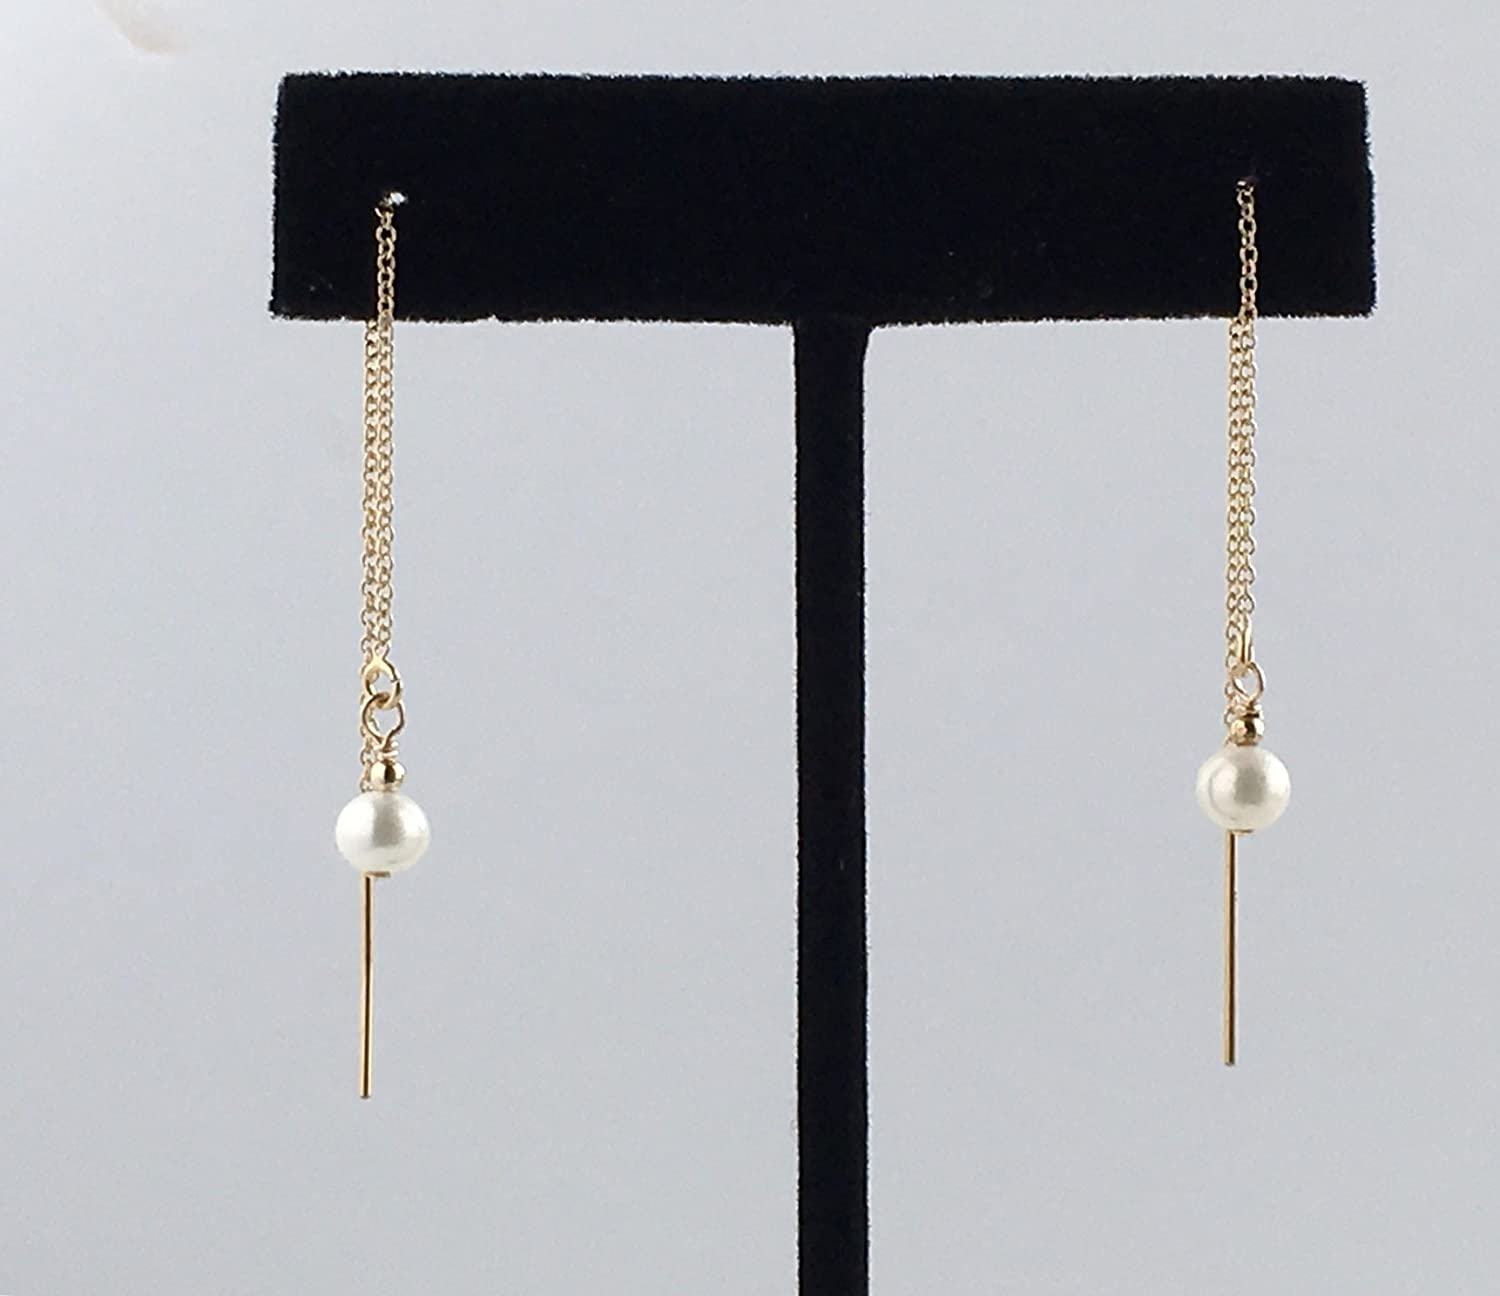 Cultured Freshwater Pearl Threader Earrings, Available in Gold, Rose Gold and Sterling Silver